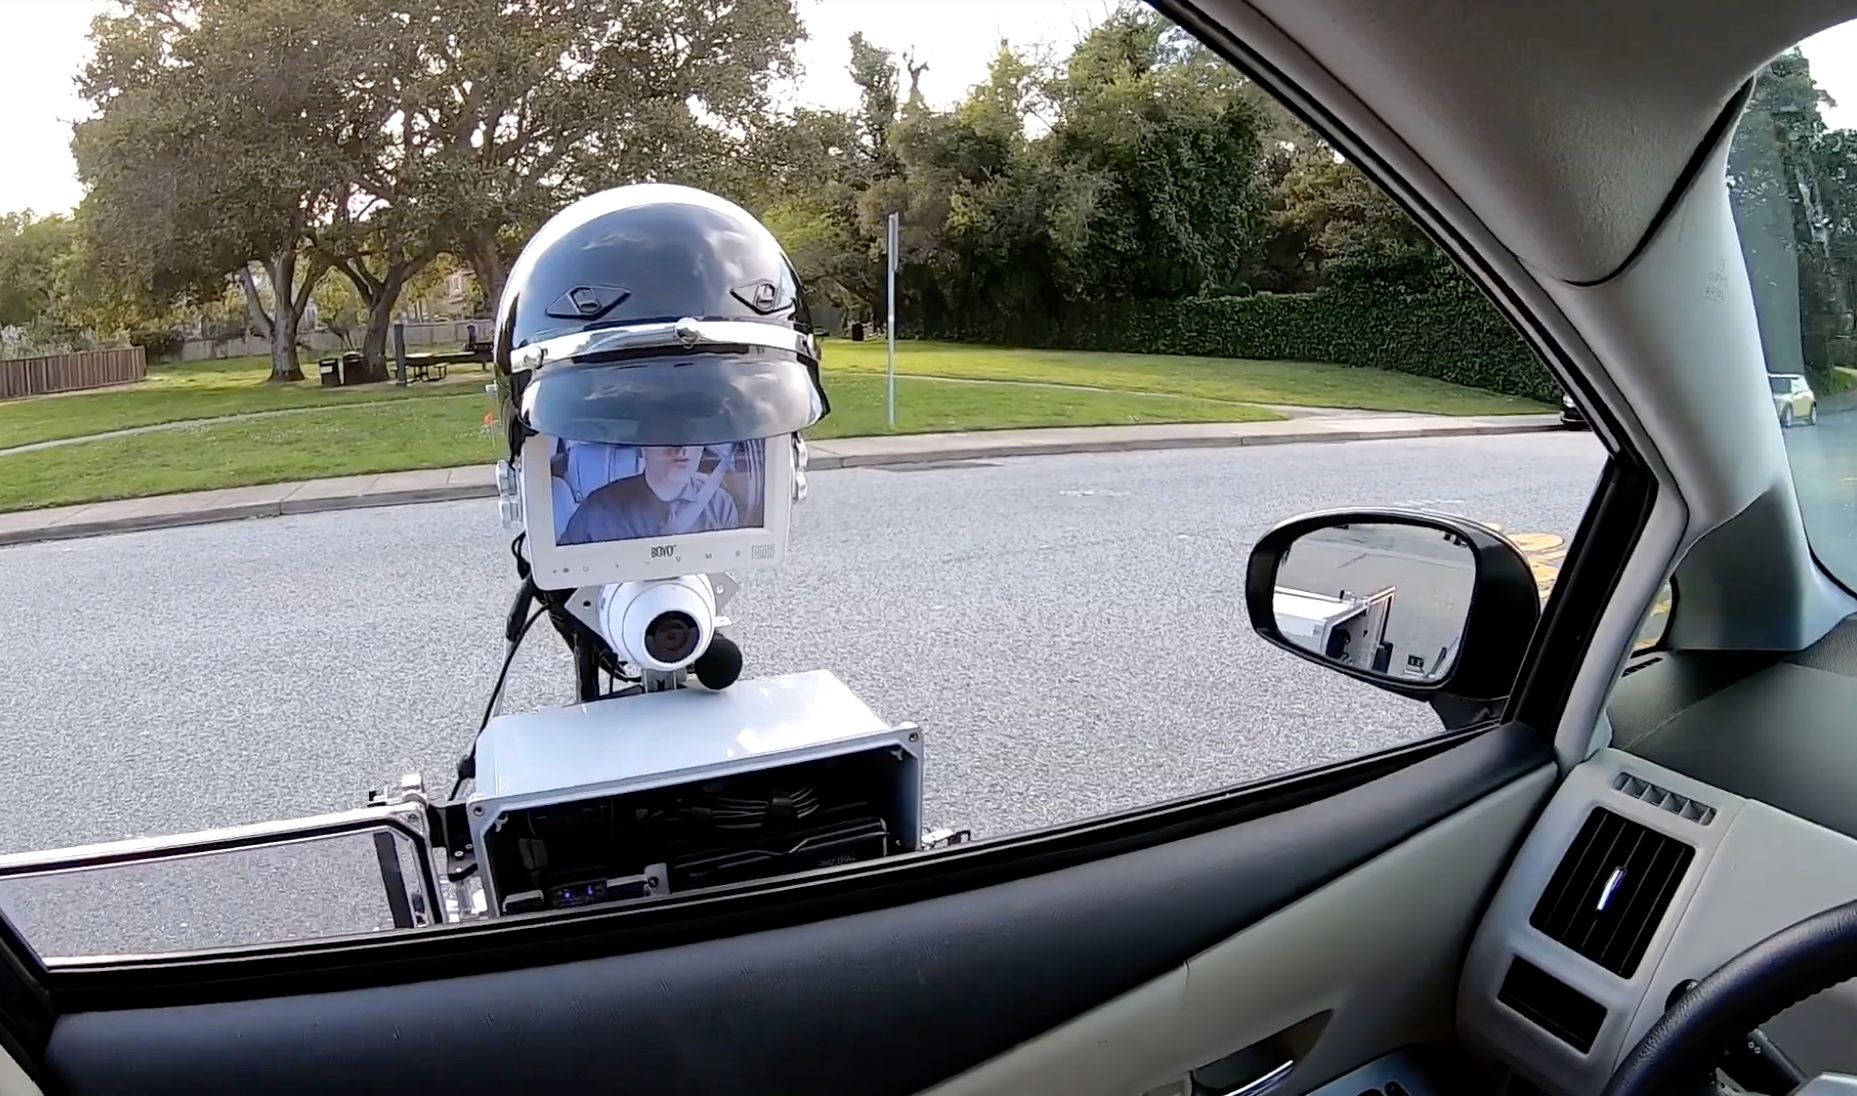 Watch This 'RoboCop' Make a Traffic Stop